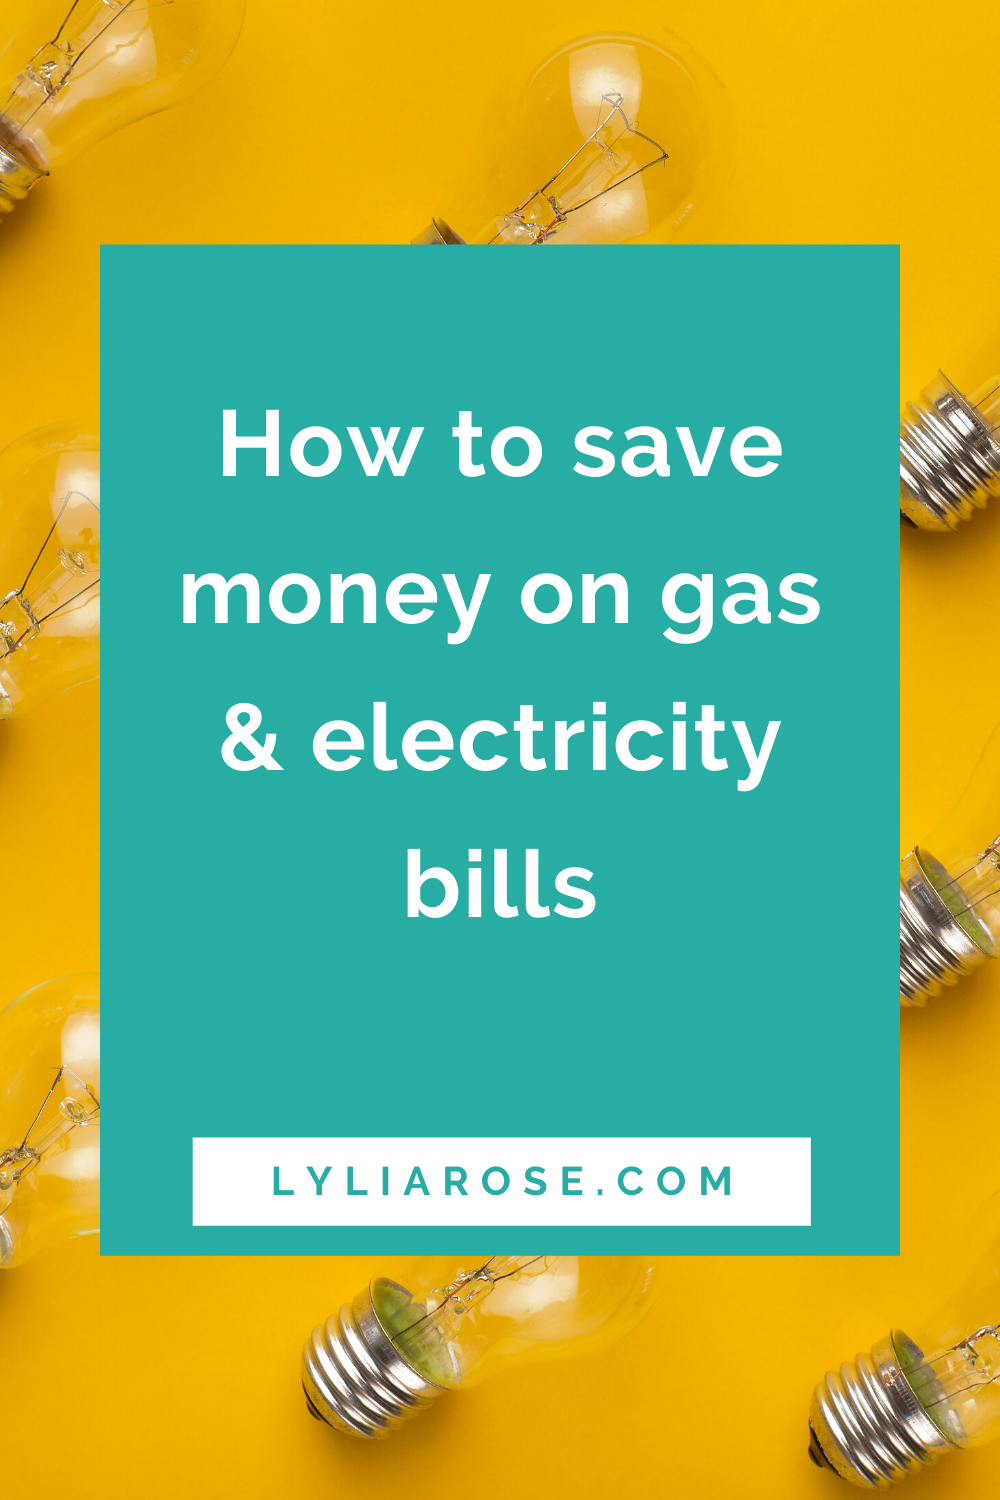 How to save money on gas and electricity bills